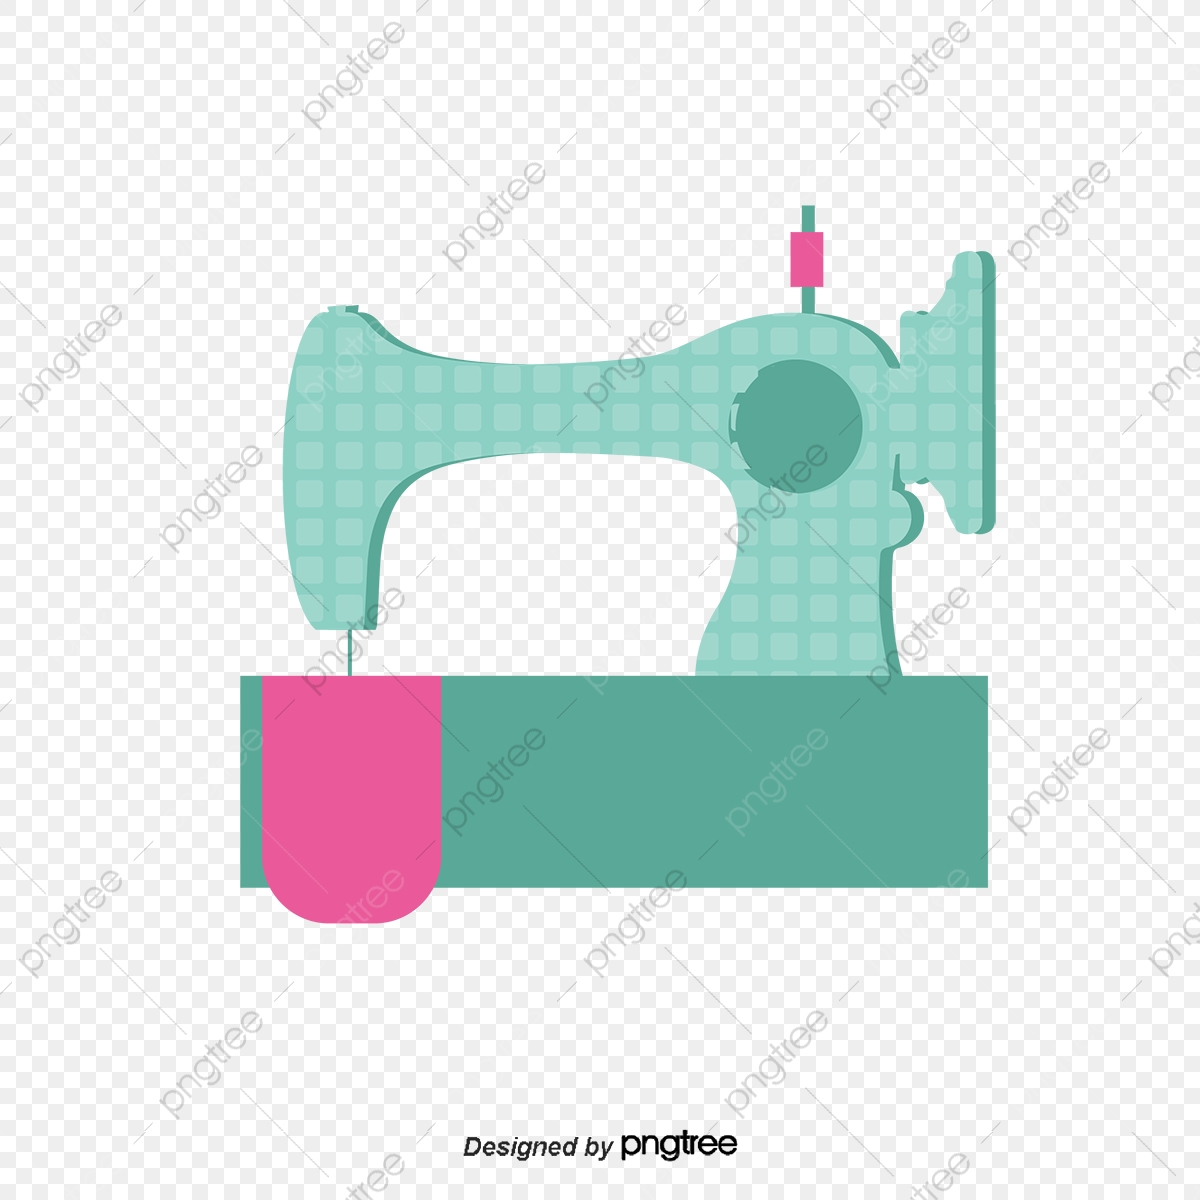 Sewing Machine Elements Vector Sewing Machine Clothing Png And